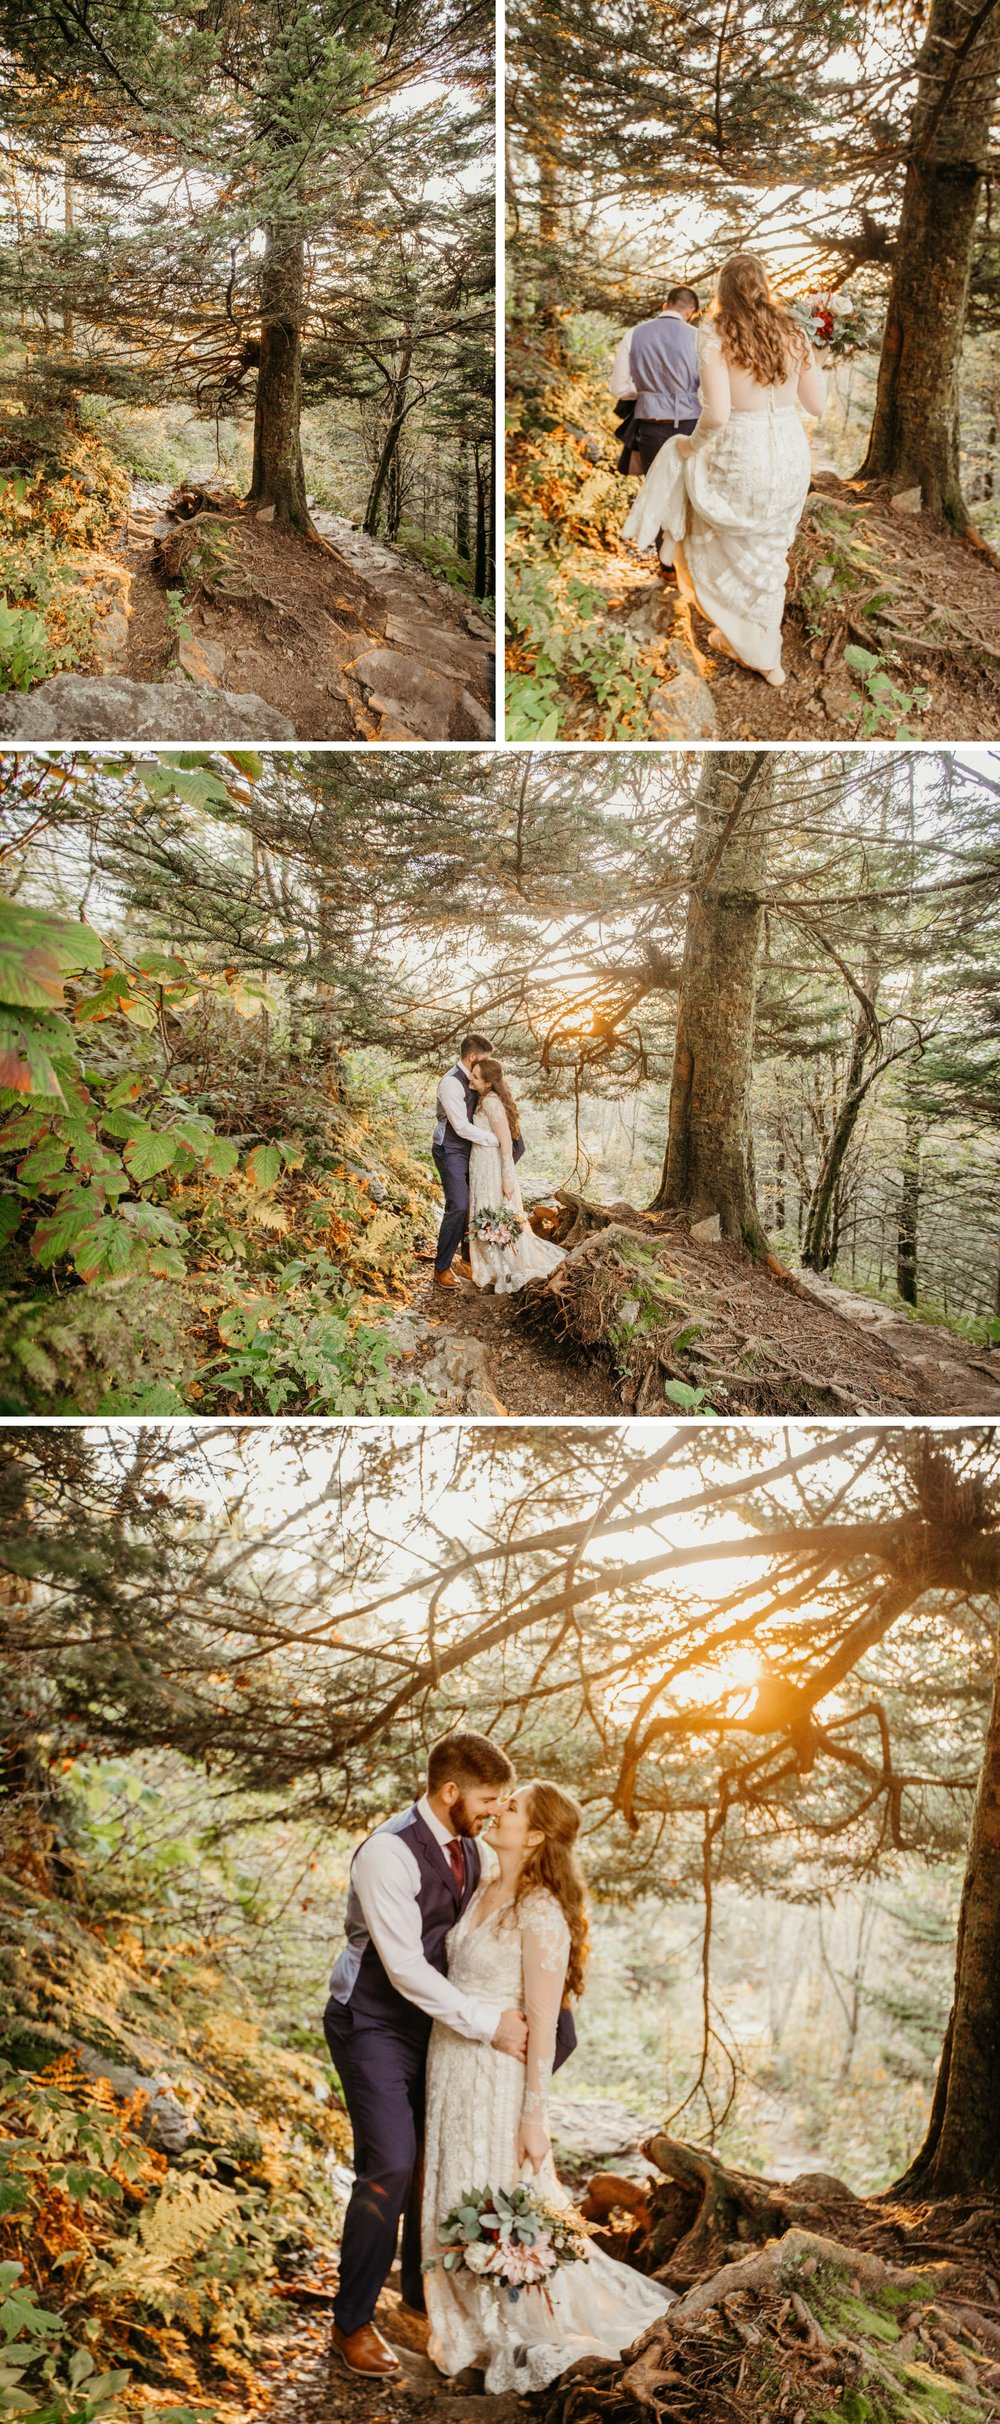 Great Smoky Mountain National Park Elopement- Cole + Rachel- Photographer Shaina DeCiryan-11.20188.jpg